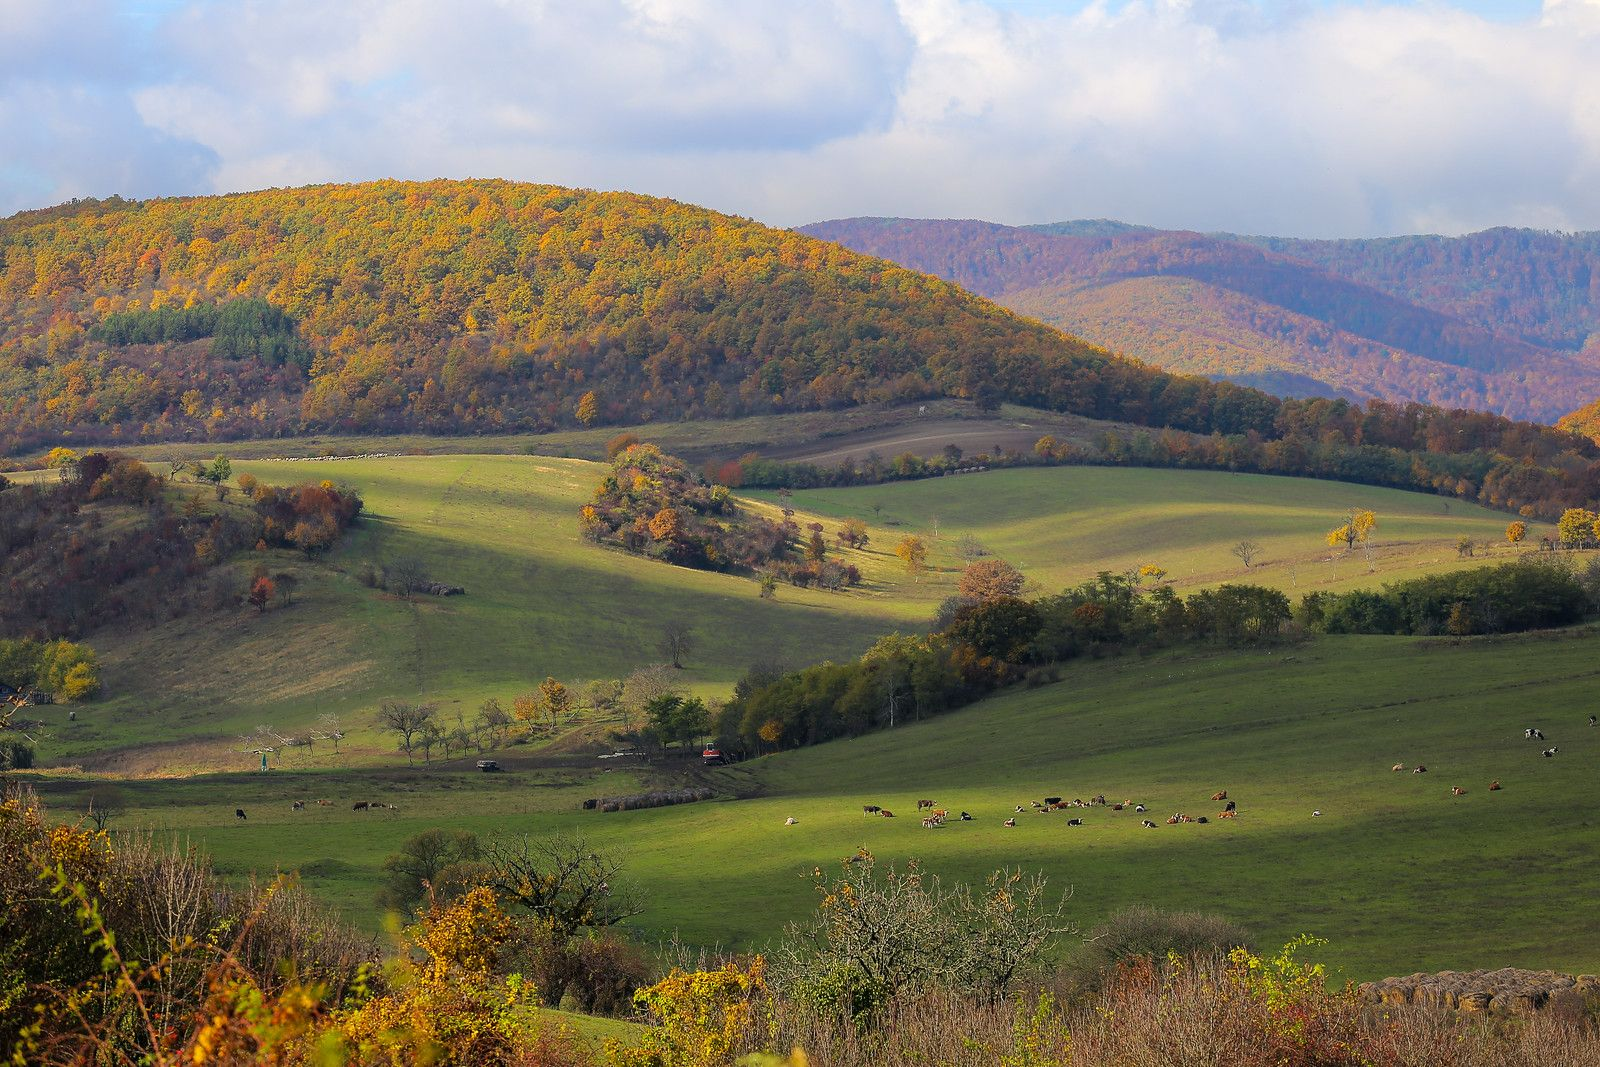 Hills near Szokolya, Pest county